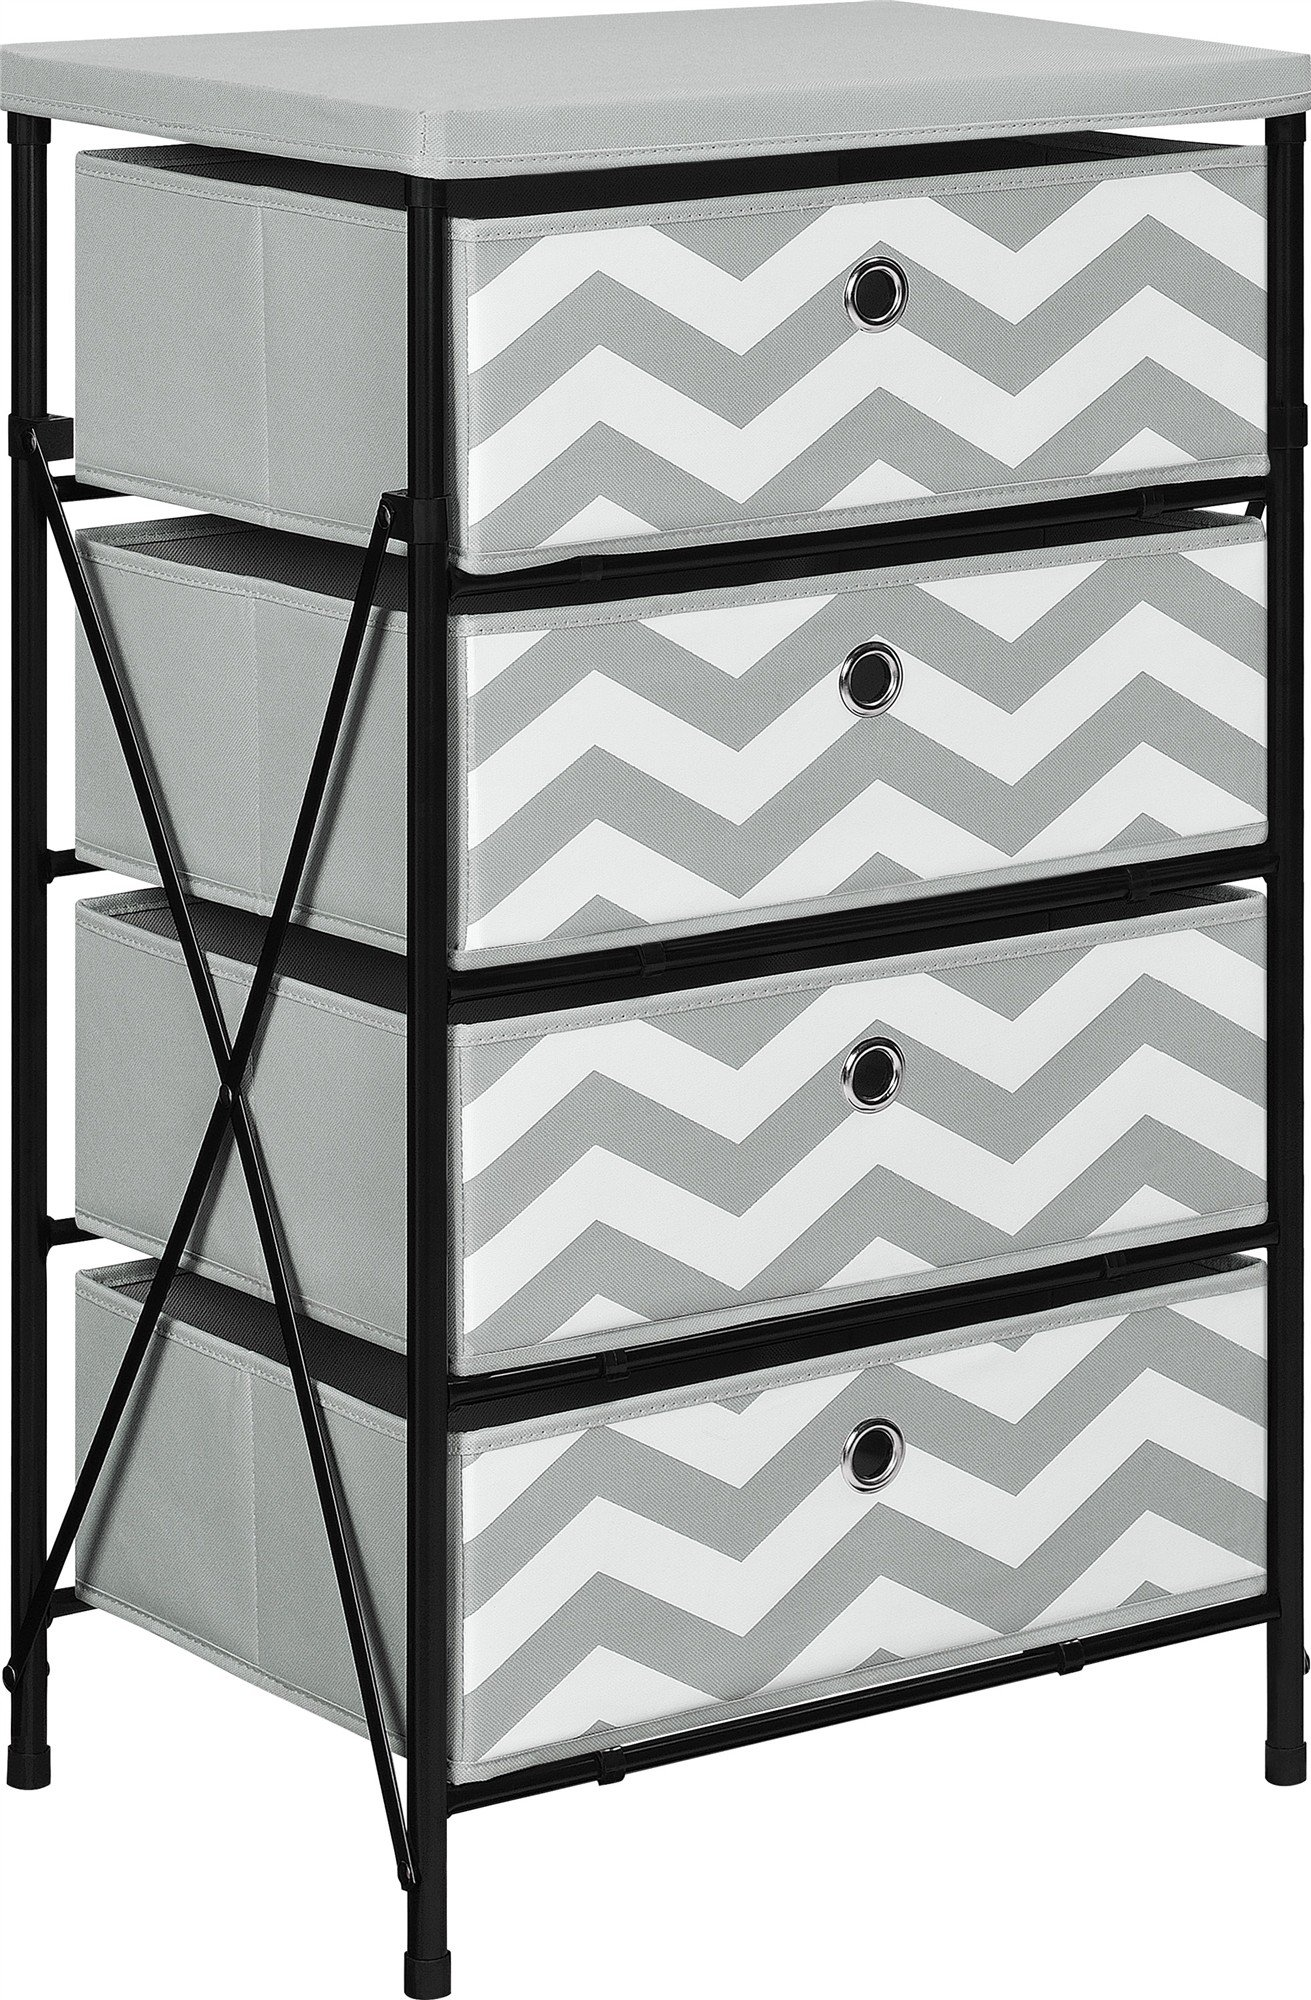 Etonnant Altra Furniture 4 Bin Kids Storage System With Gray And White Chevron  Pattern